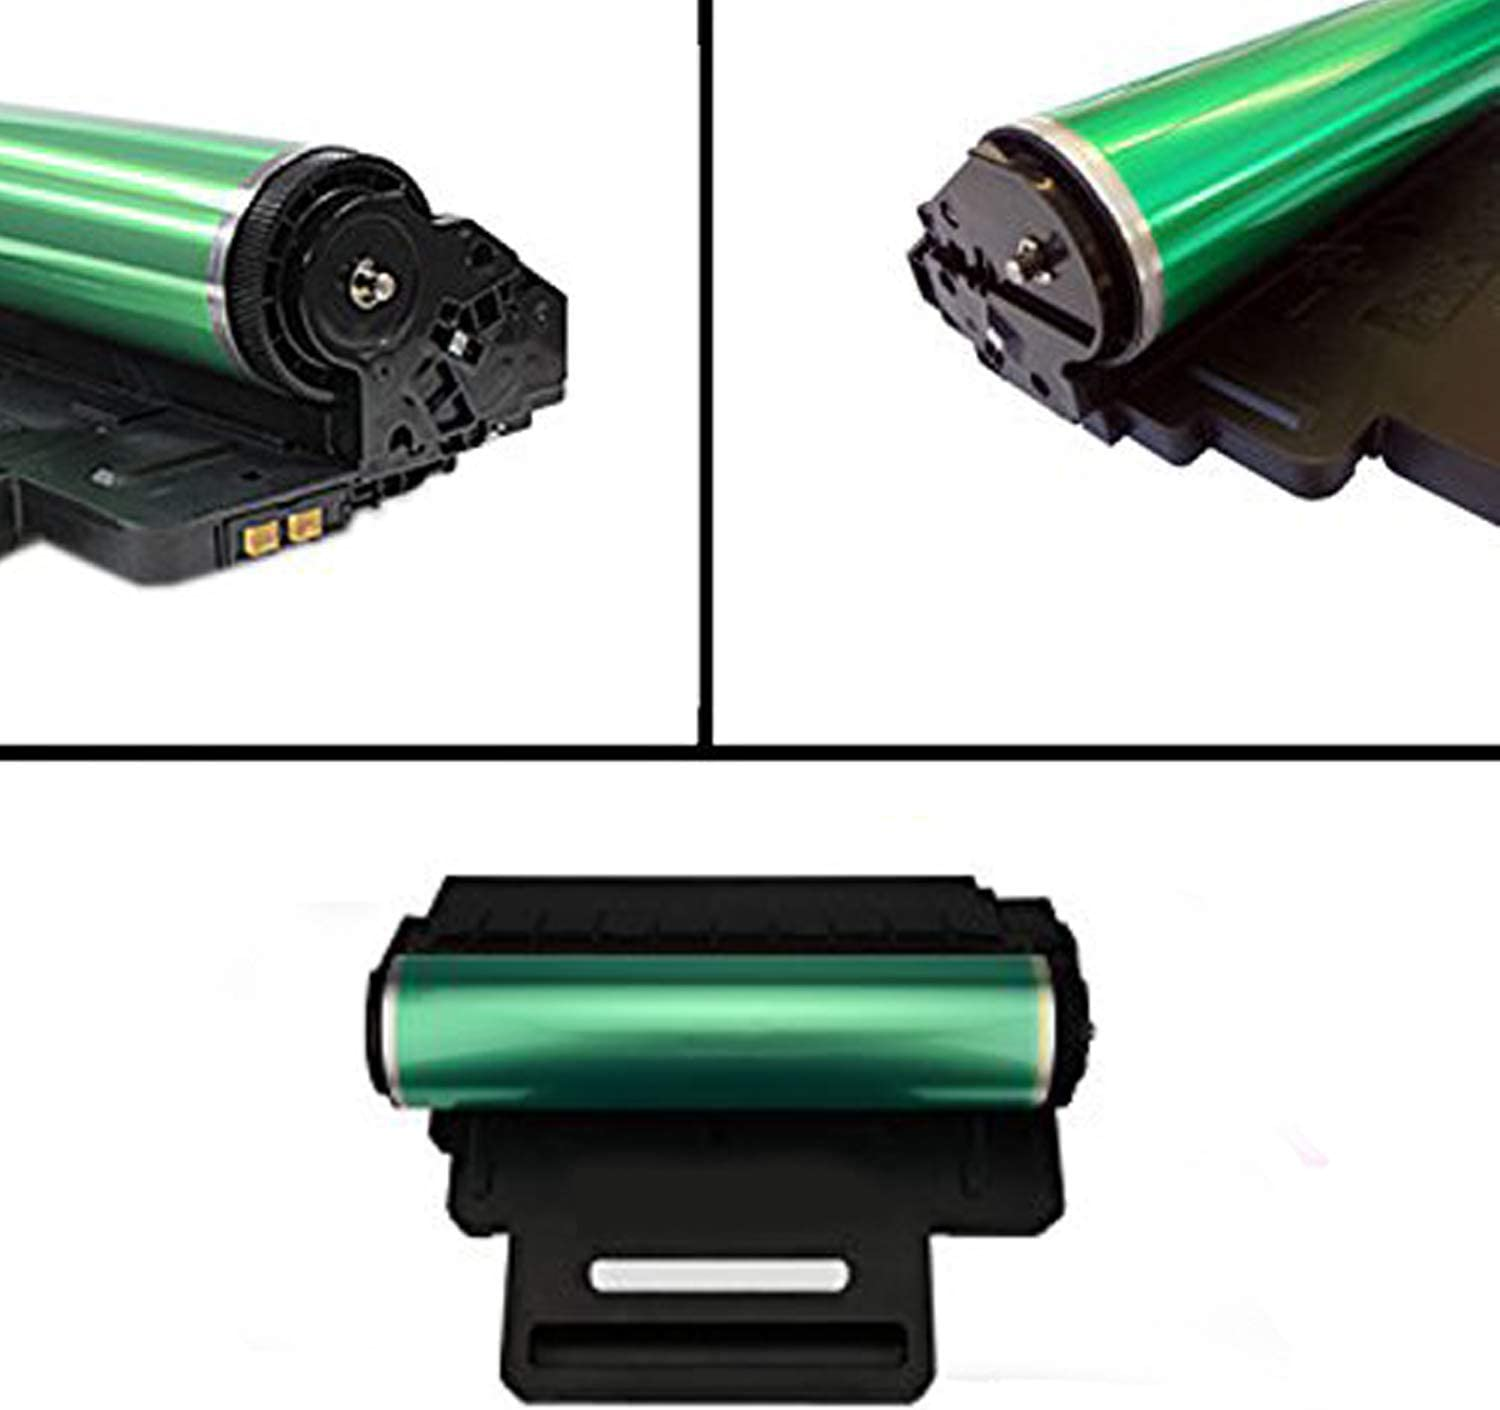 CLT-C409S CLX-3185N 315W CLP-325W Black, 1-Pack CLP-320 Awesometoner Compatible Drum Cartridge Replacement for Samsung CLTR407 use with CLP-315 CLP-325 CLX-3175FN CLX-3185FW CLP-320N